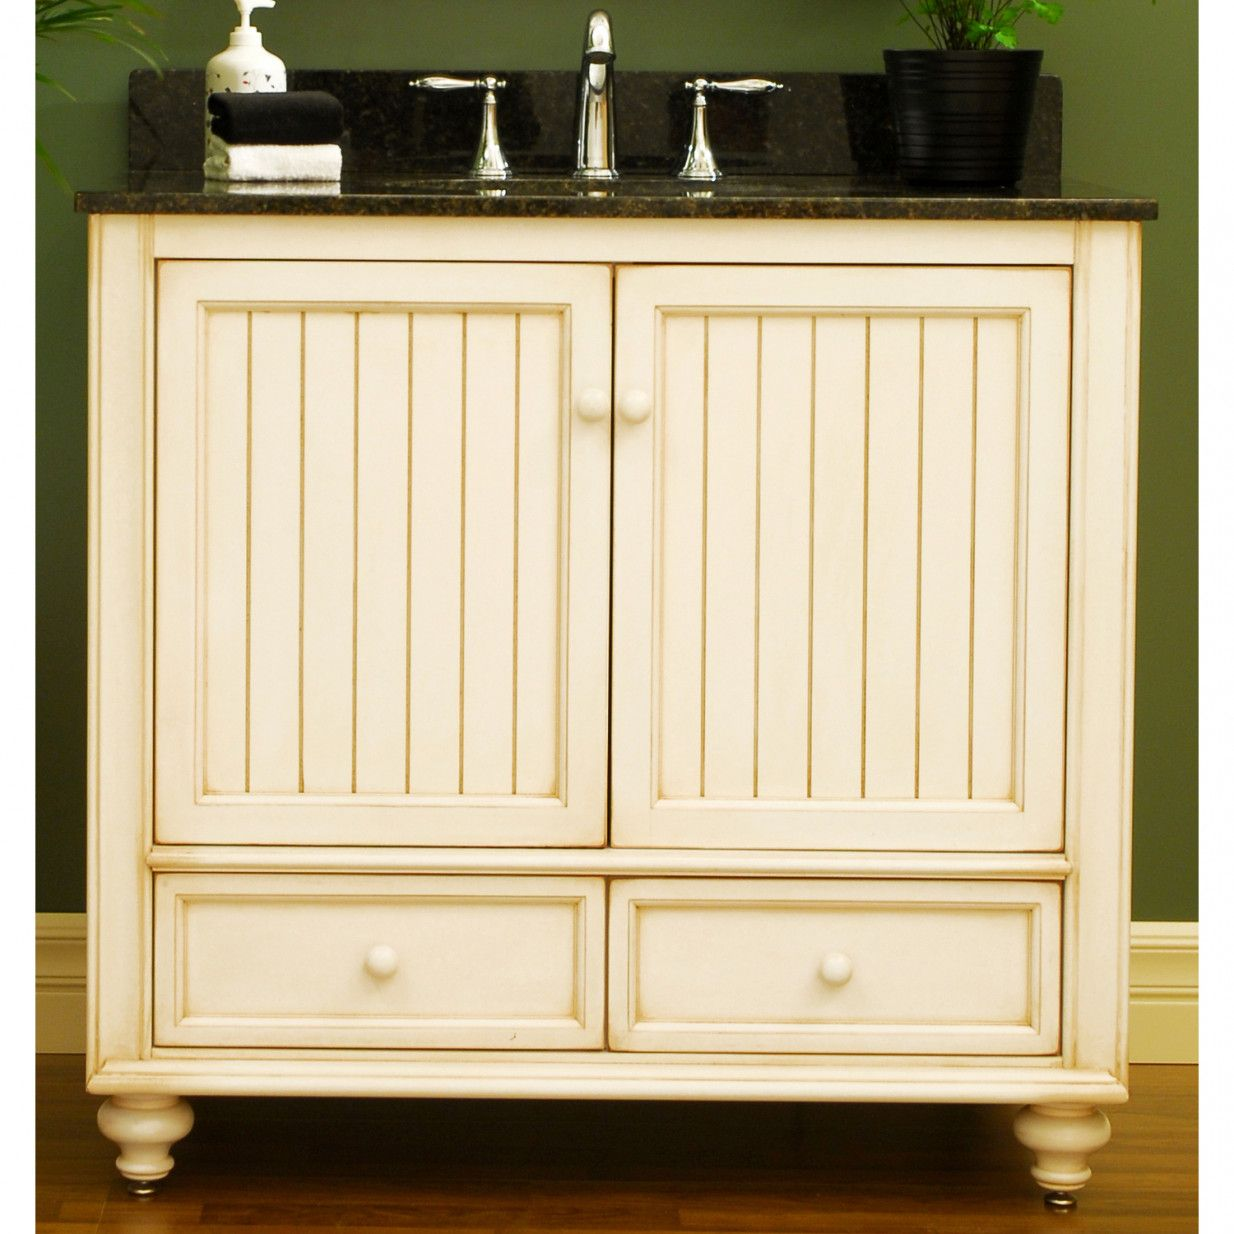 2019 Bathroom Cabinet Styles - Neutral Interior Paint Colors Check ...